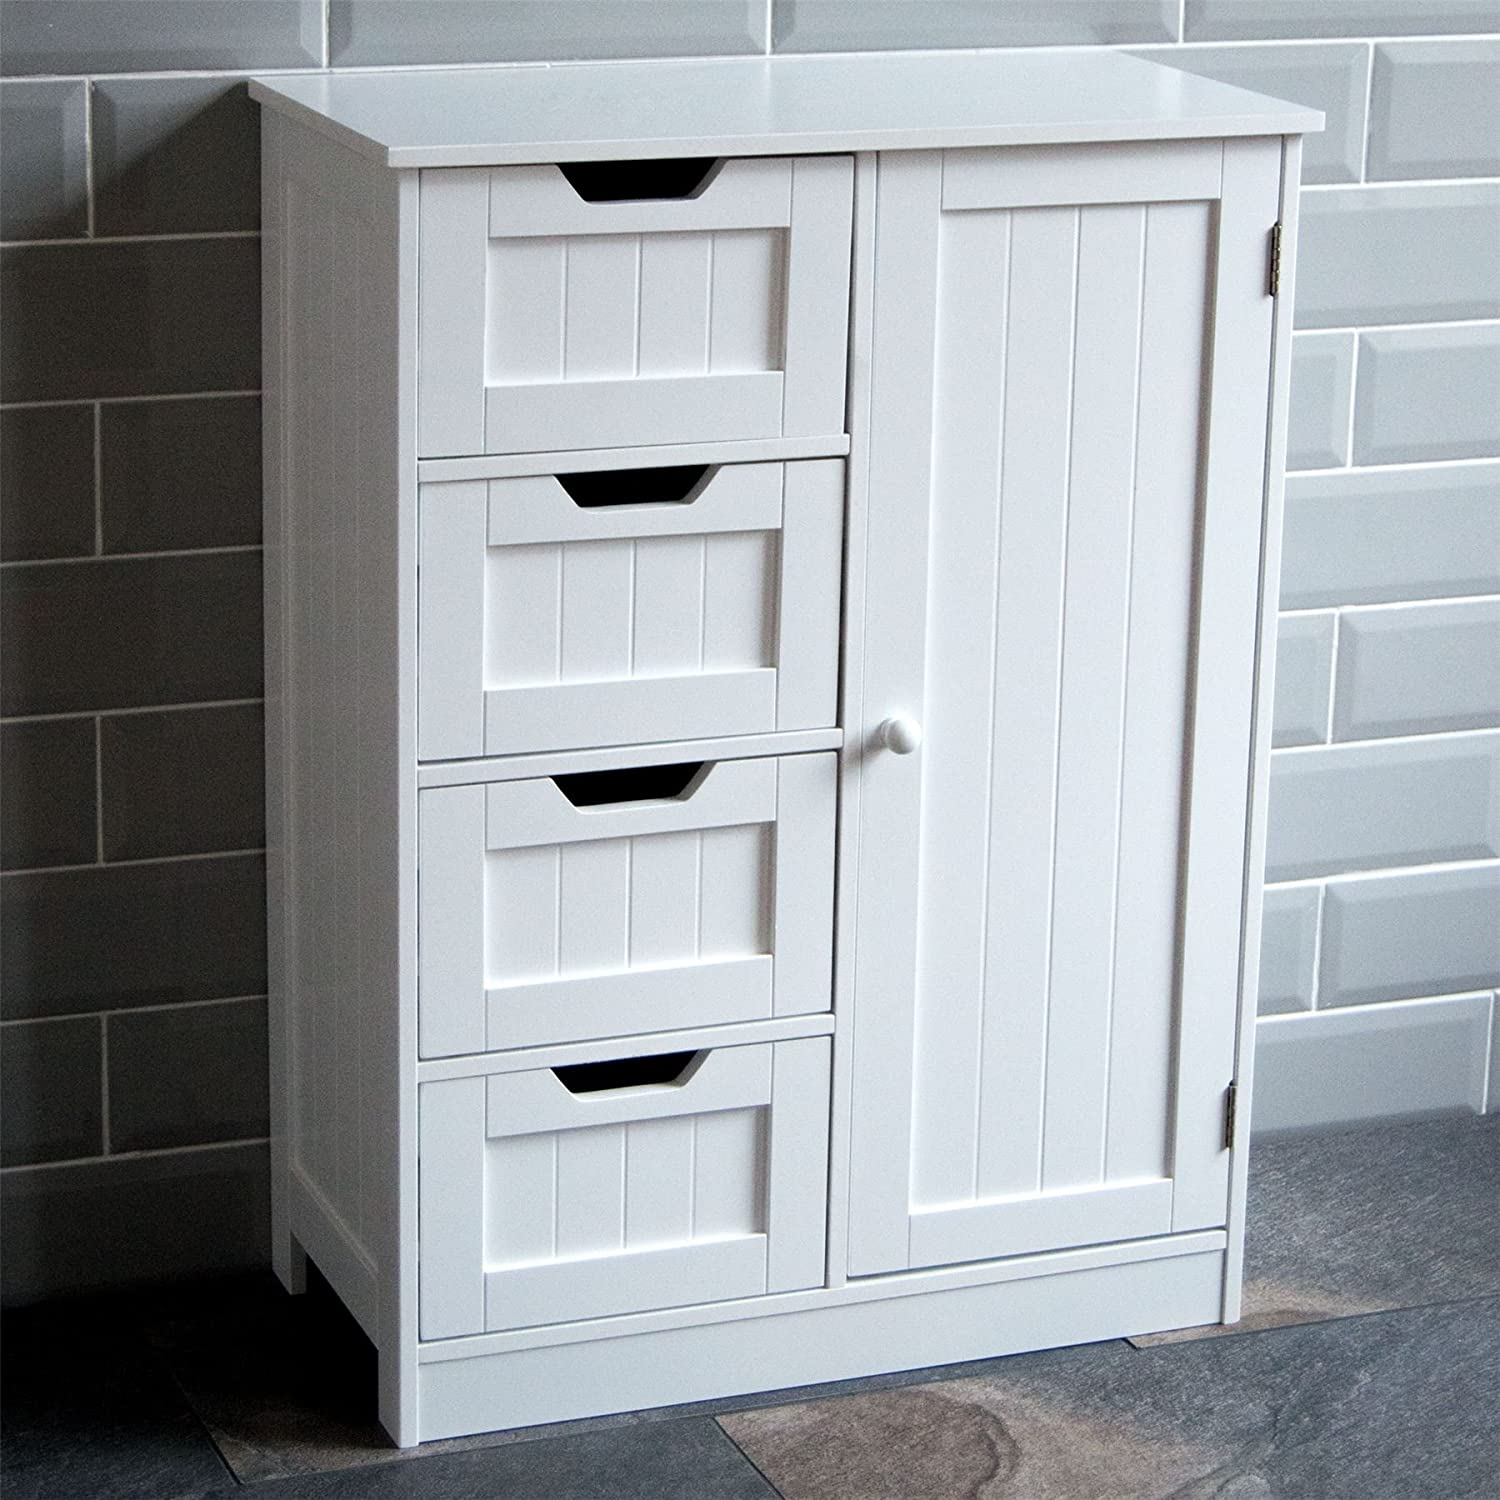 home discount bathroom cupboard 4 drawer 1 door floor standing cabinet unit storage wood white